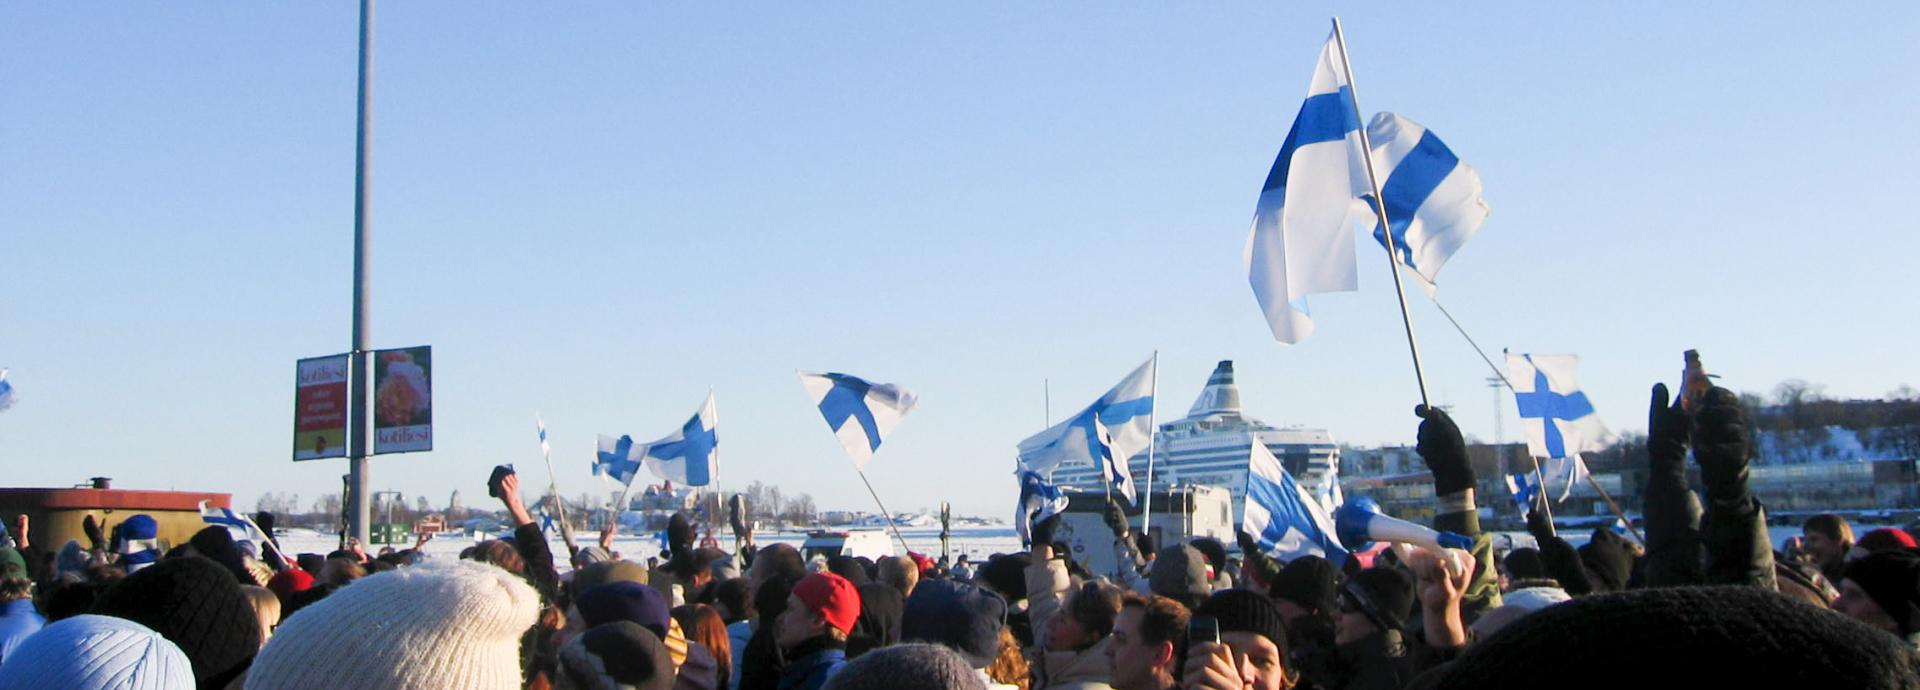 A big crowd of people at the Helsinki Market Square during winter waving Finnish flags